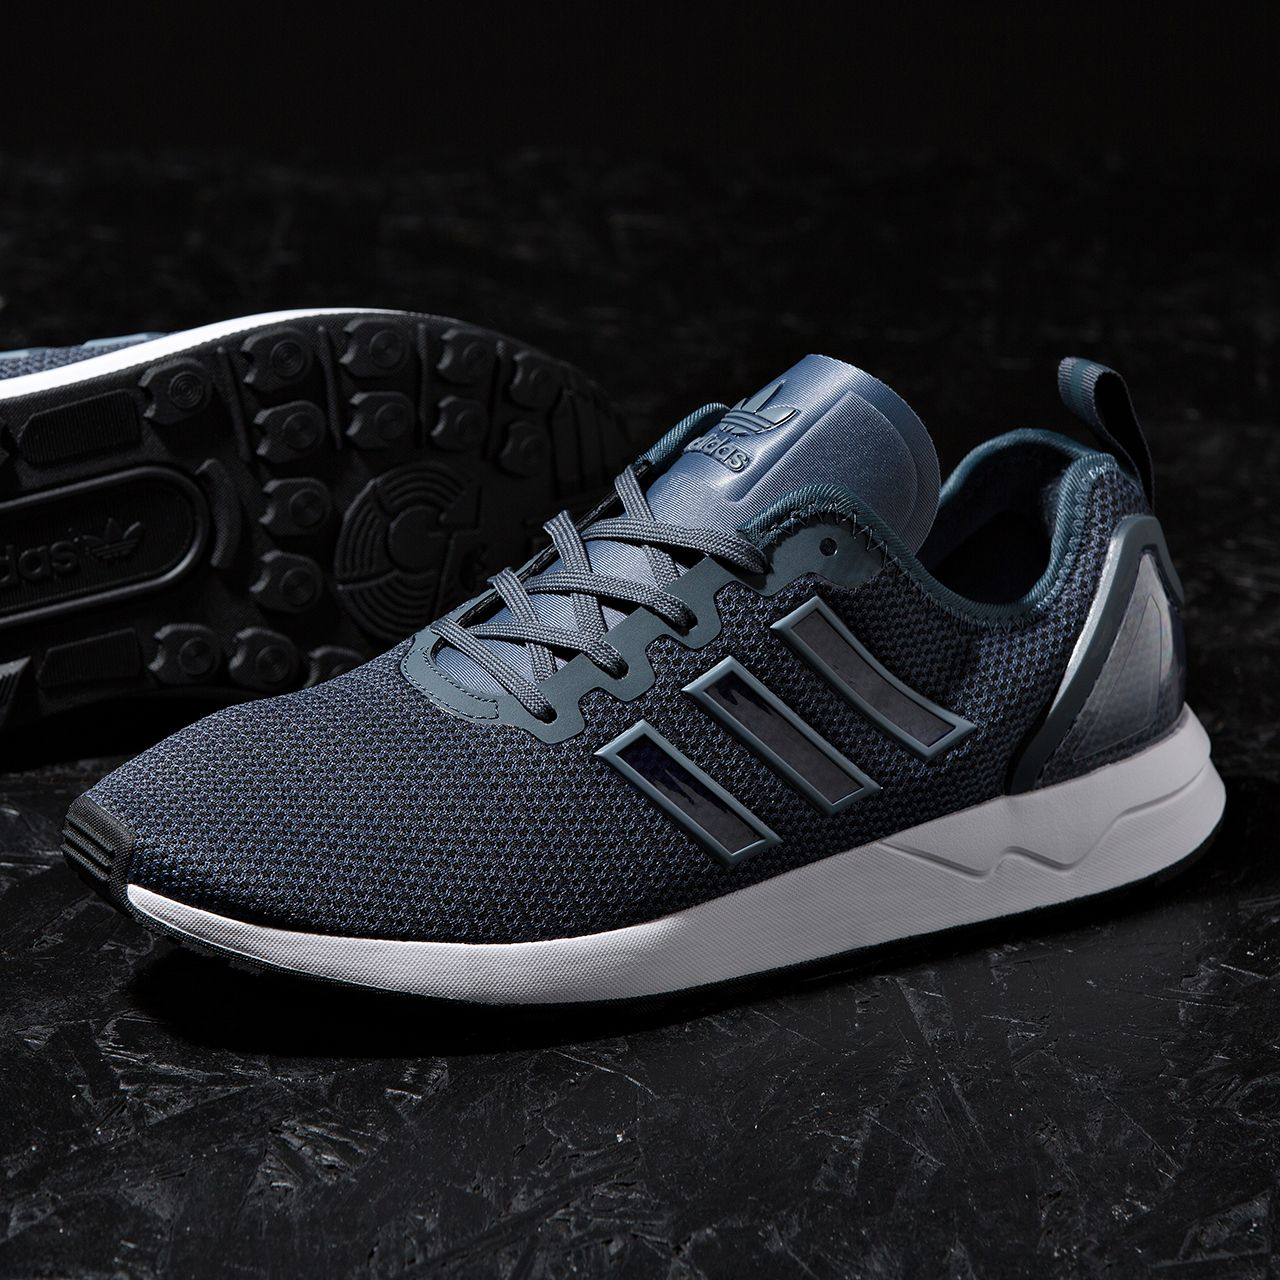 Unisex Adidas Zx Flux Breathable Running Deep Shoes Black Blue Casual Best Shopping